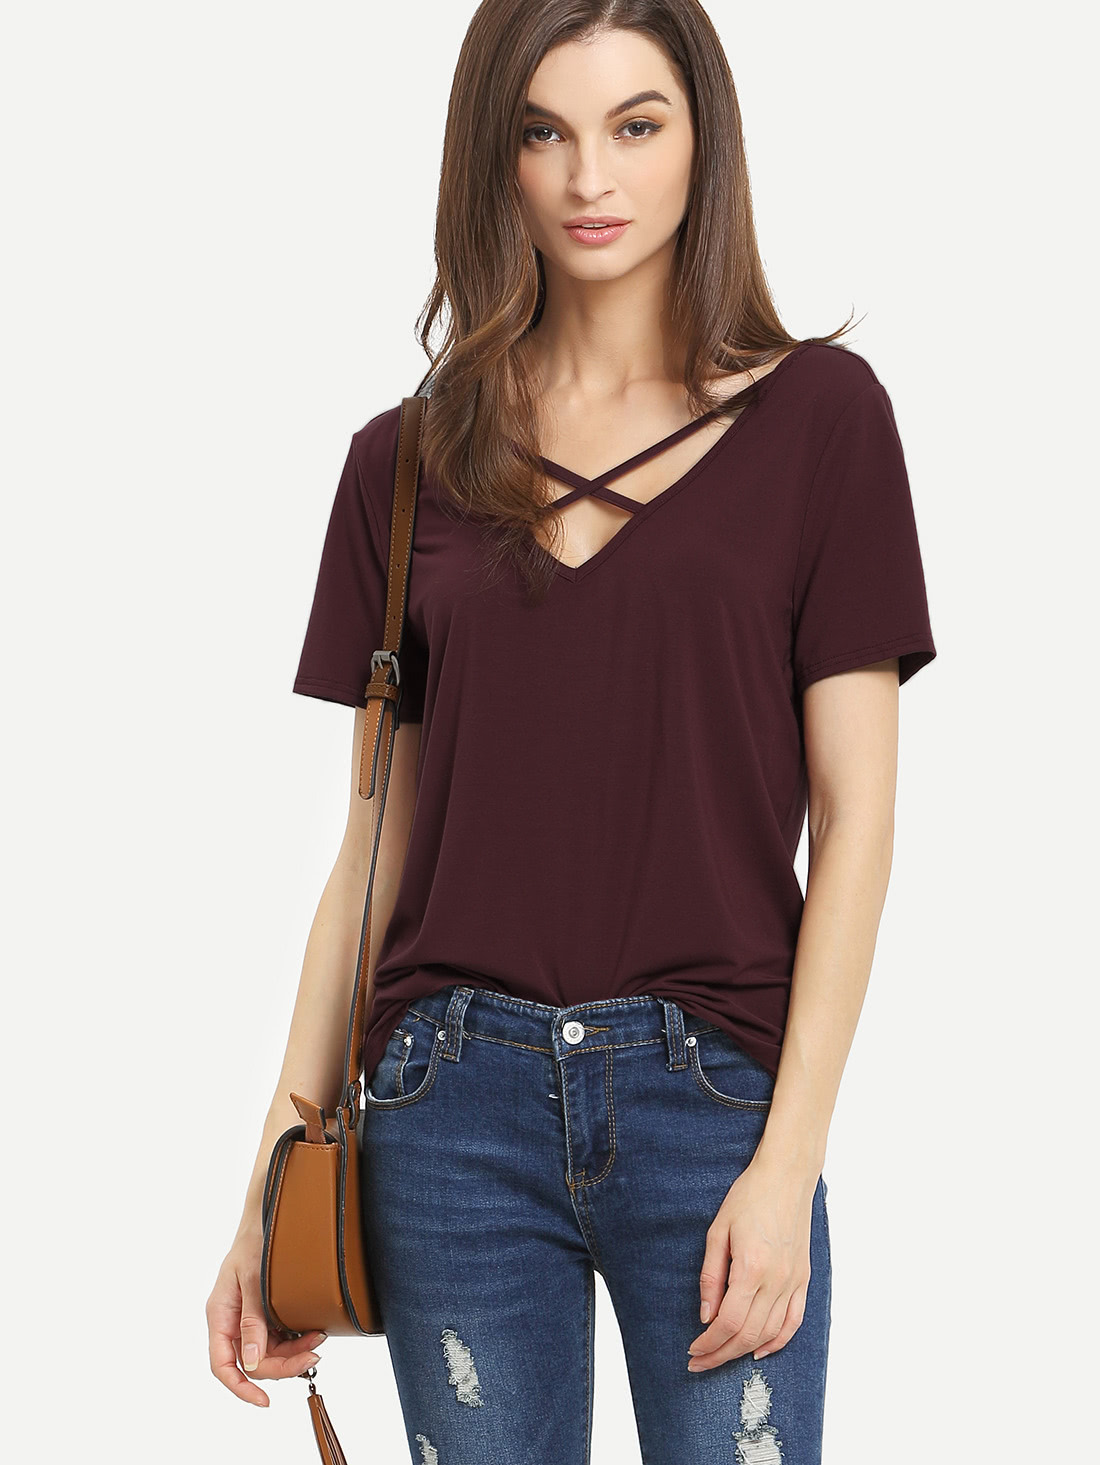 Inexpensive Fall Women's Shirts Under $20 - Mommy Blogger-VLogger -- The Overwhelmed Mommy -